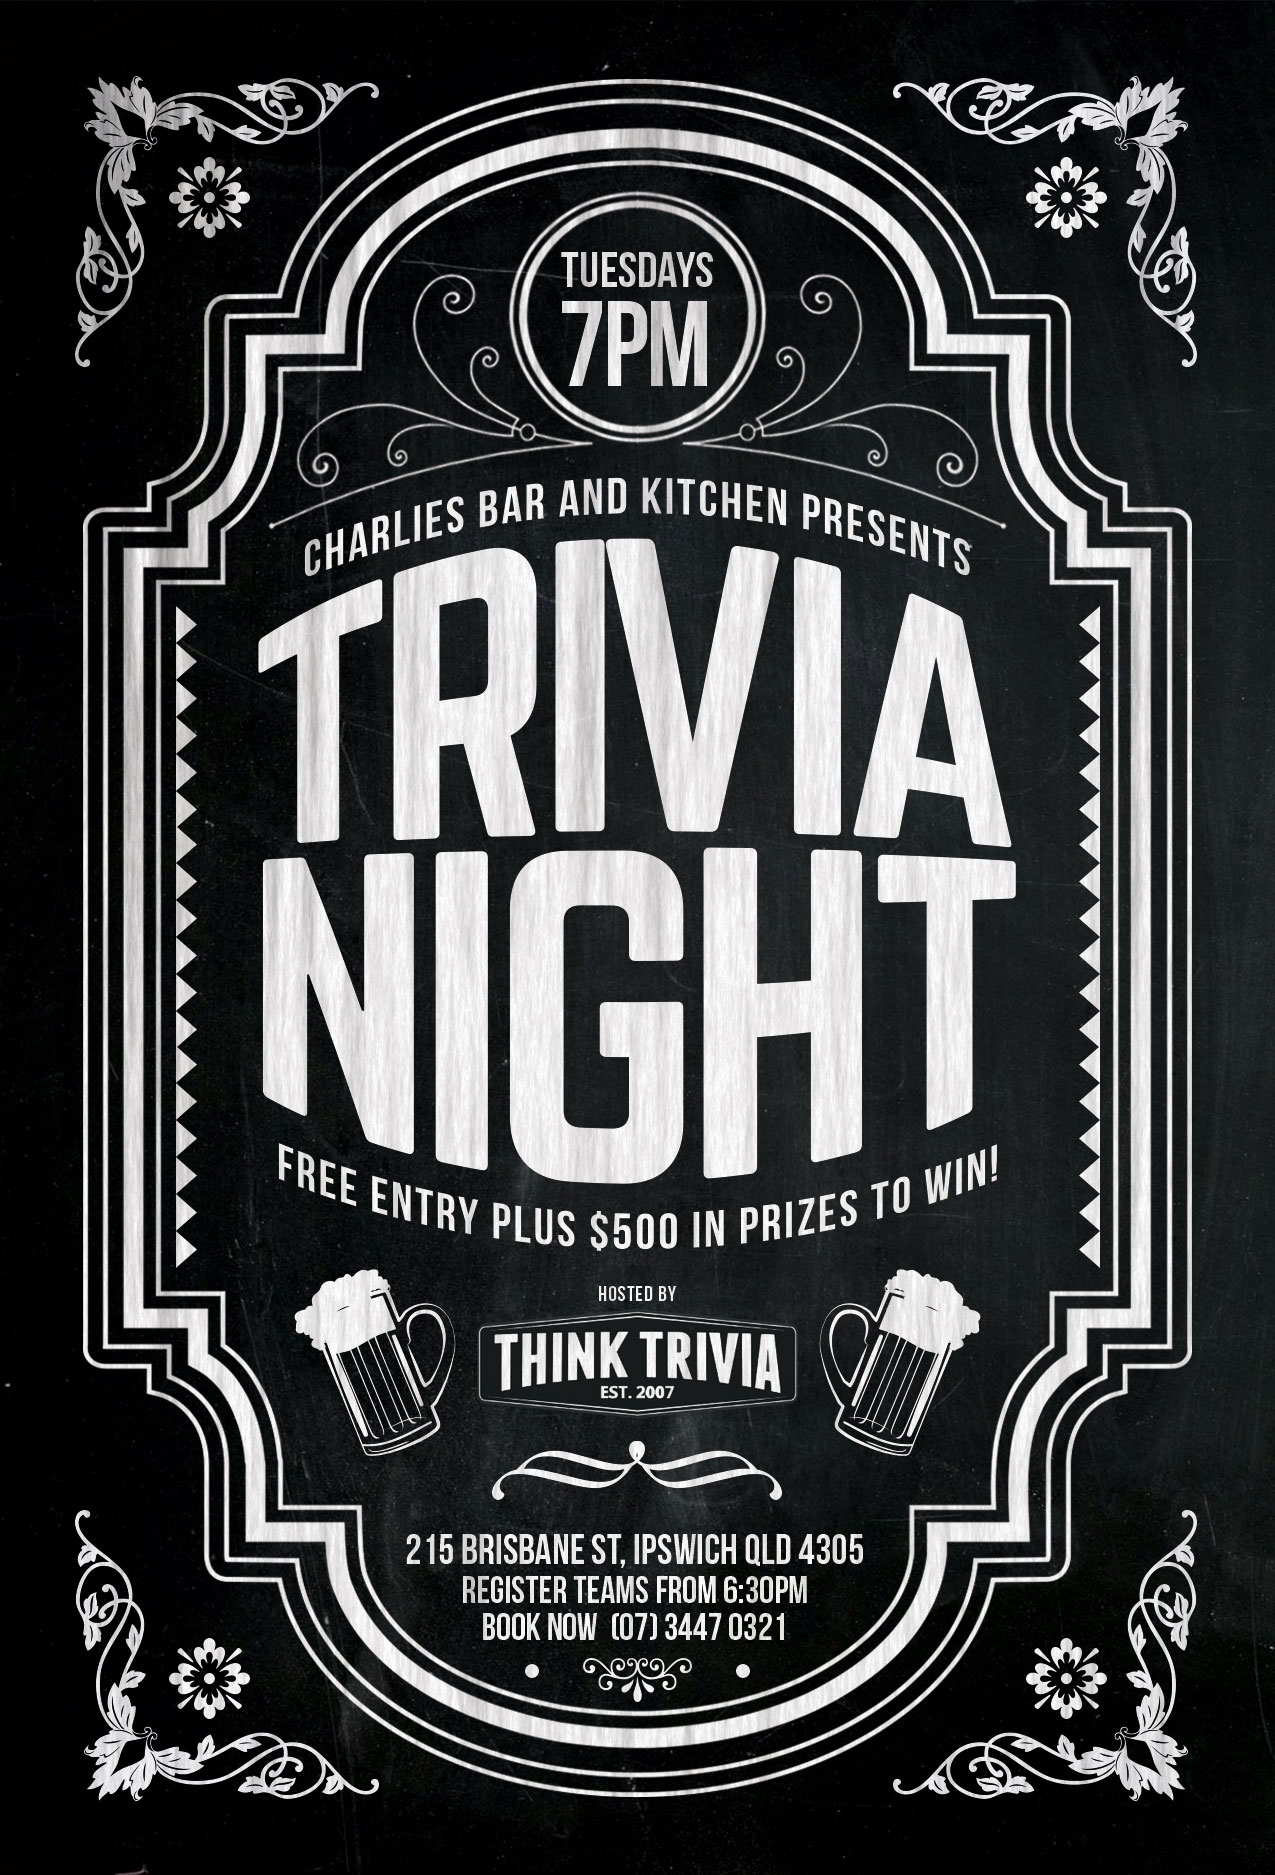 Ipswich Trivia - Tuesday - 7pm @ Charlies Bar & Kitchen